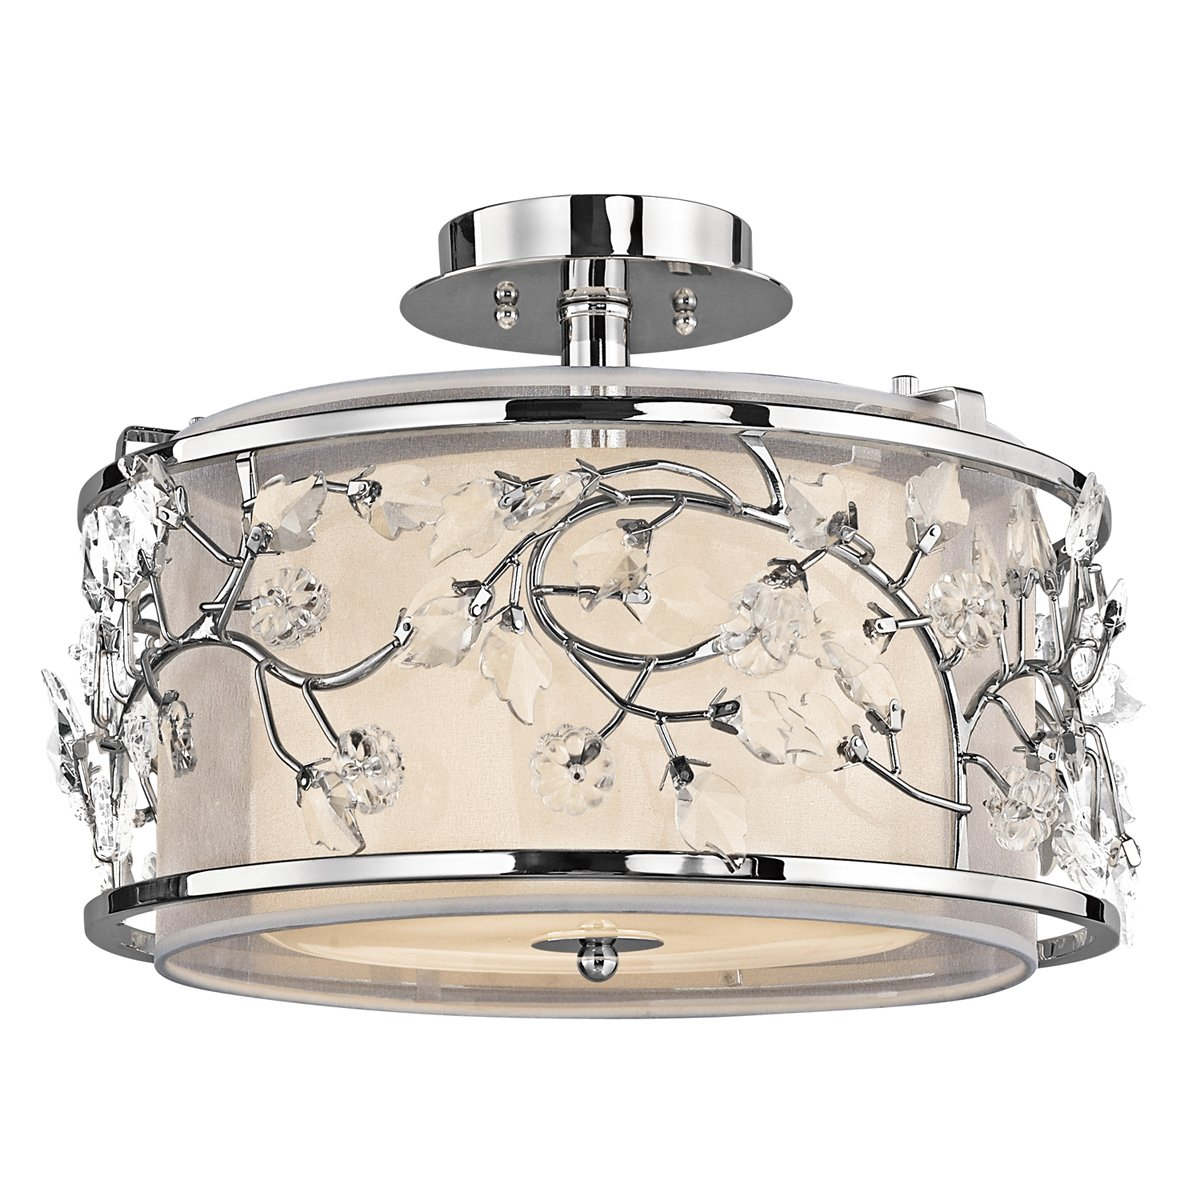 h products lights flush xiertekusa ceiling light d all mount natalia chandelier flushmount pedant crystal and x chrome index